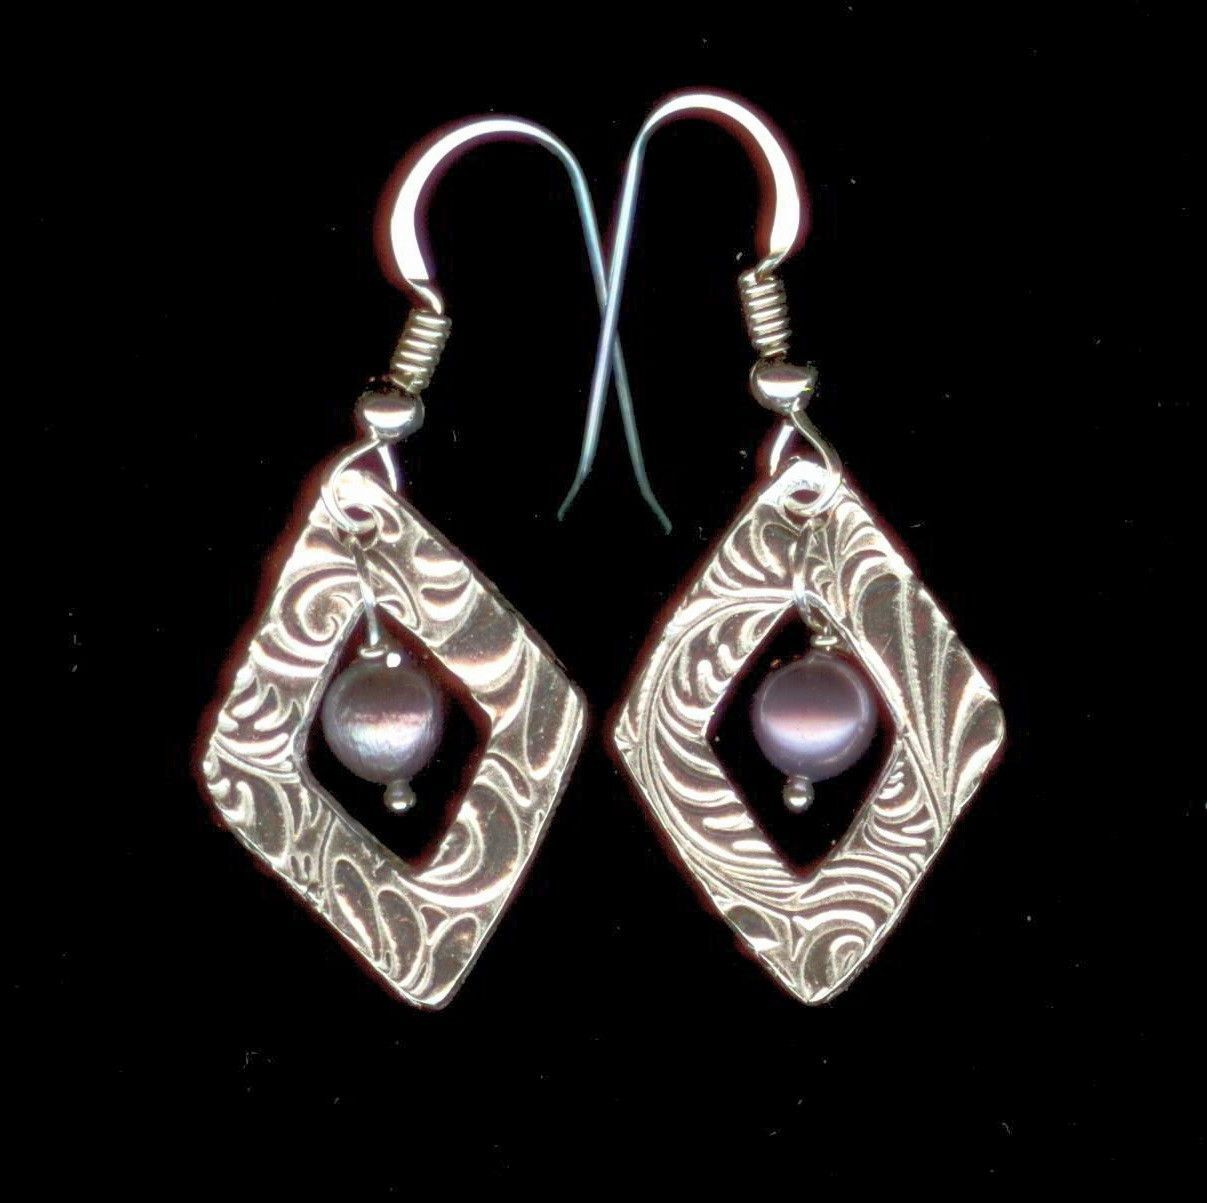 Earrings - Fine silver and freshwater pearls